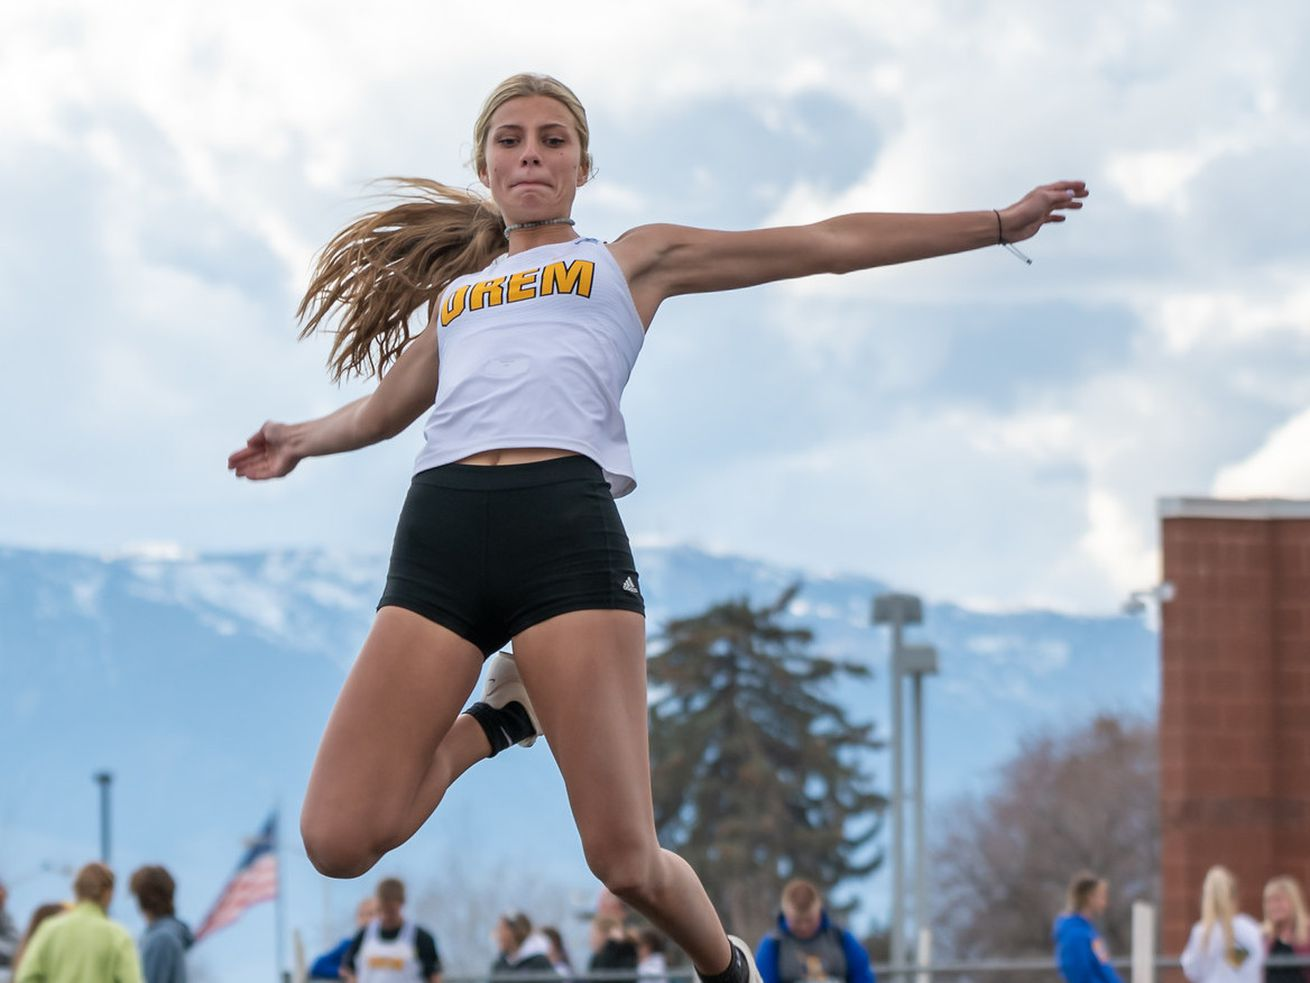 High school sports 20 for 20: Pursuit of state long jump record on hold for Orem's Taye Raymond, maybe forever